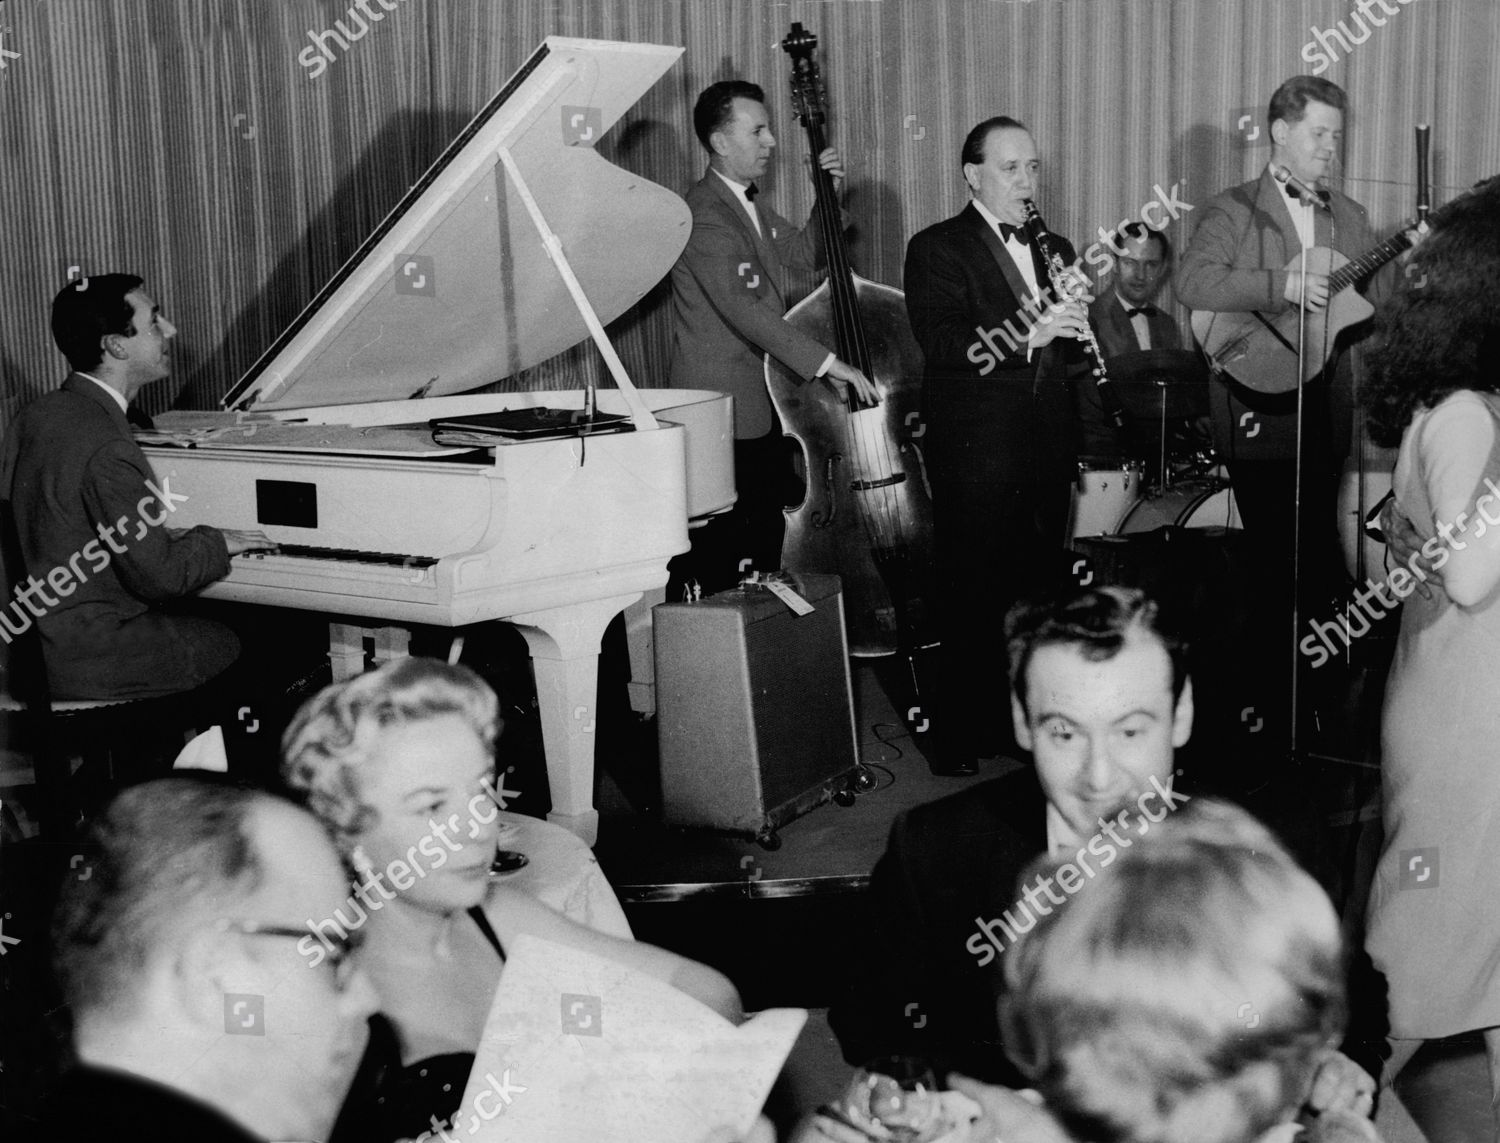 Harry Roy And His Band At The Mayfair Hotel Piano Damian Robinson Bass Geoff Sothcott Drums Derek Fairbrass Guitar Denny Fisher Stock Image By Edwin